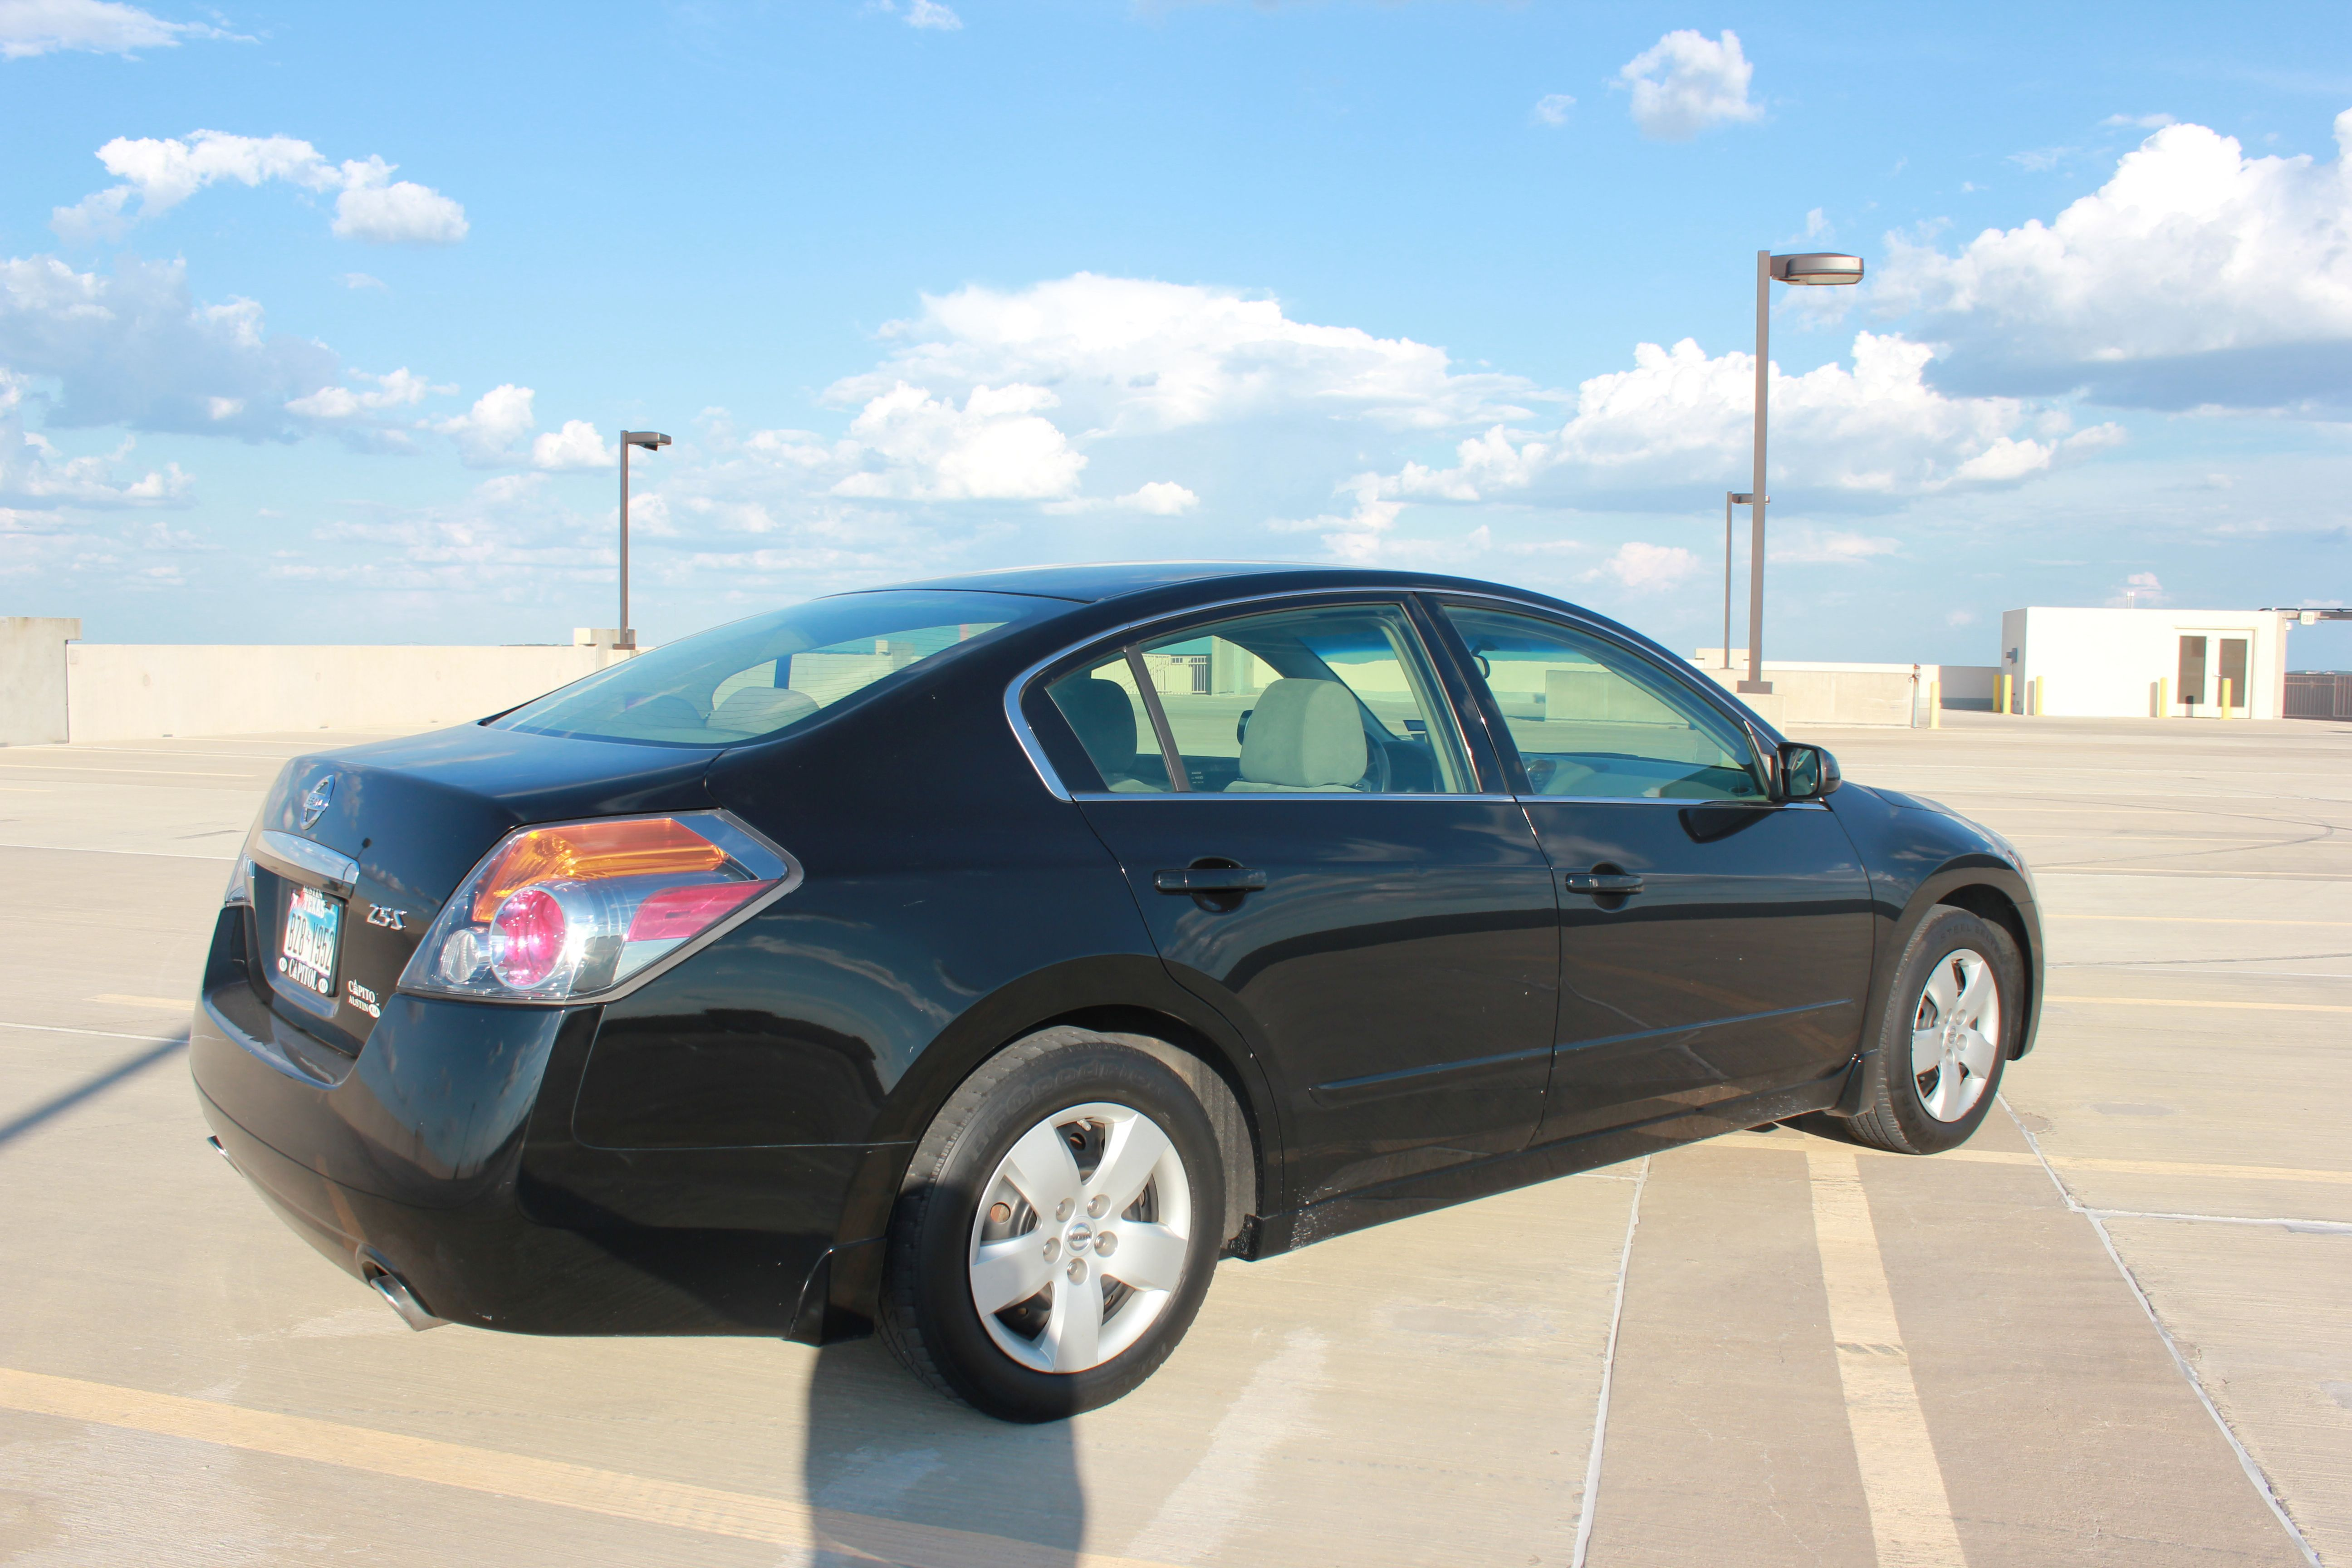 2007 Nissan Altima 116,251 Miles Ext: Black Int: Grey Cloth Engine: 2.5  Liter 4 Cylinder Tranny: CVT Automatic Mpg: 23/32 Stereo/navigation  Options: AM/FM ...